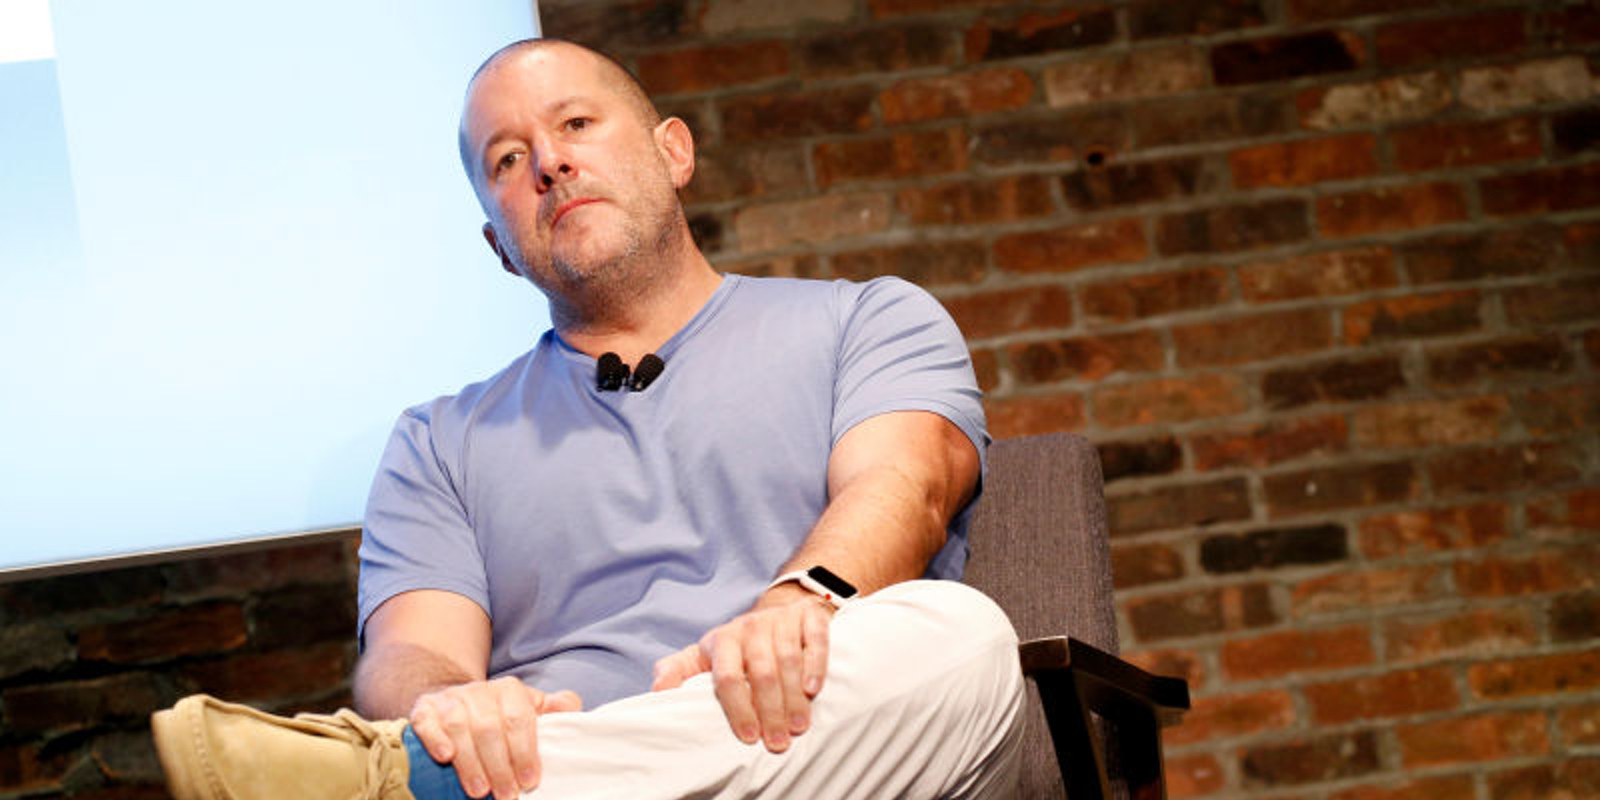 WSJ: Jony Ive was intimately involved with Apple Watch development, slowly drifted away after Watch shipped, sometimes not turning up to meetings